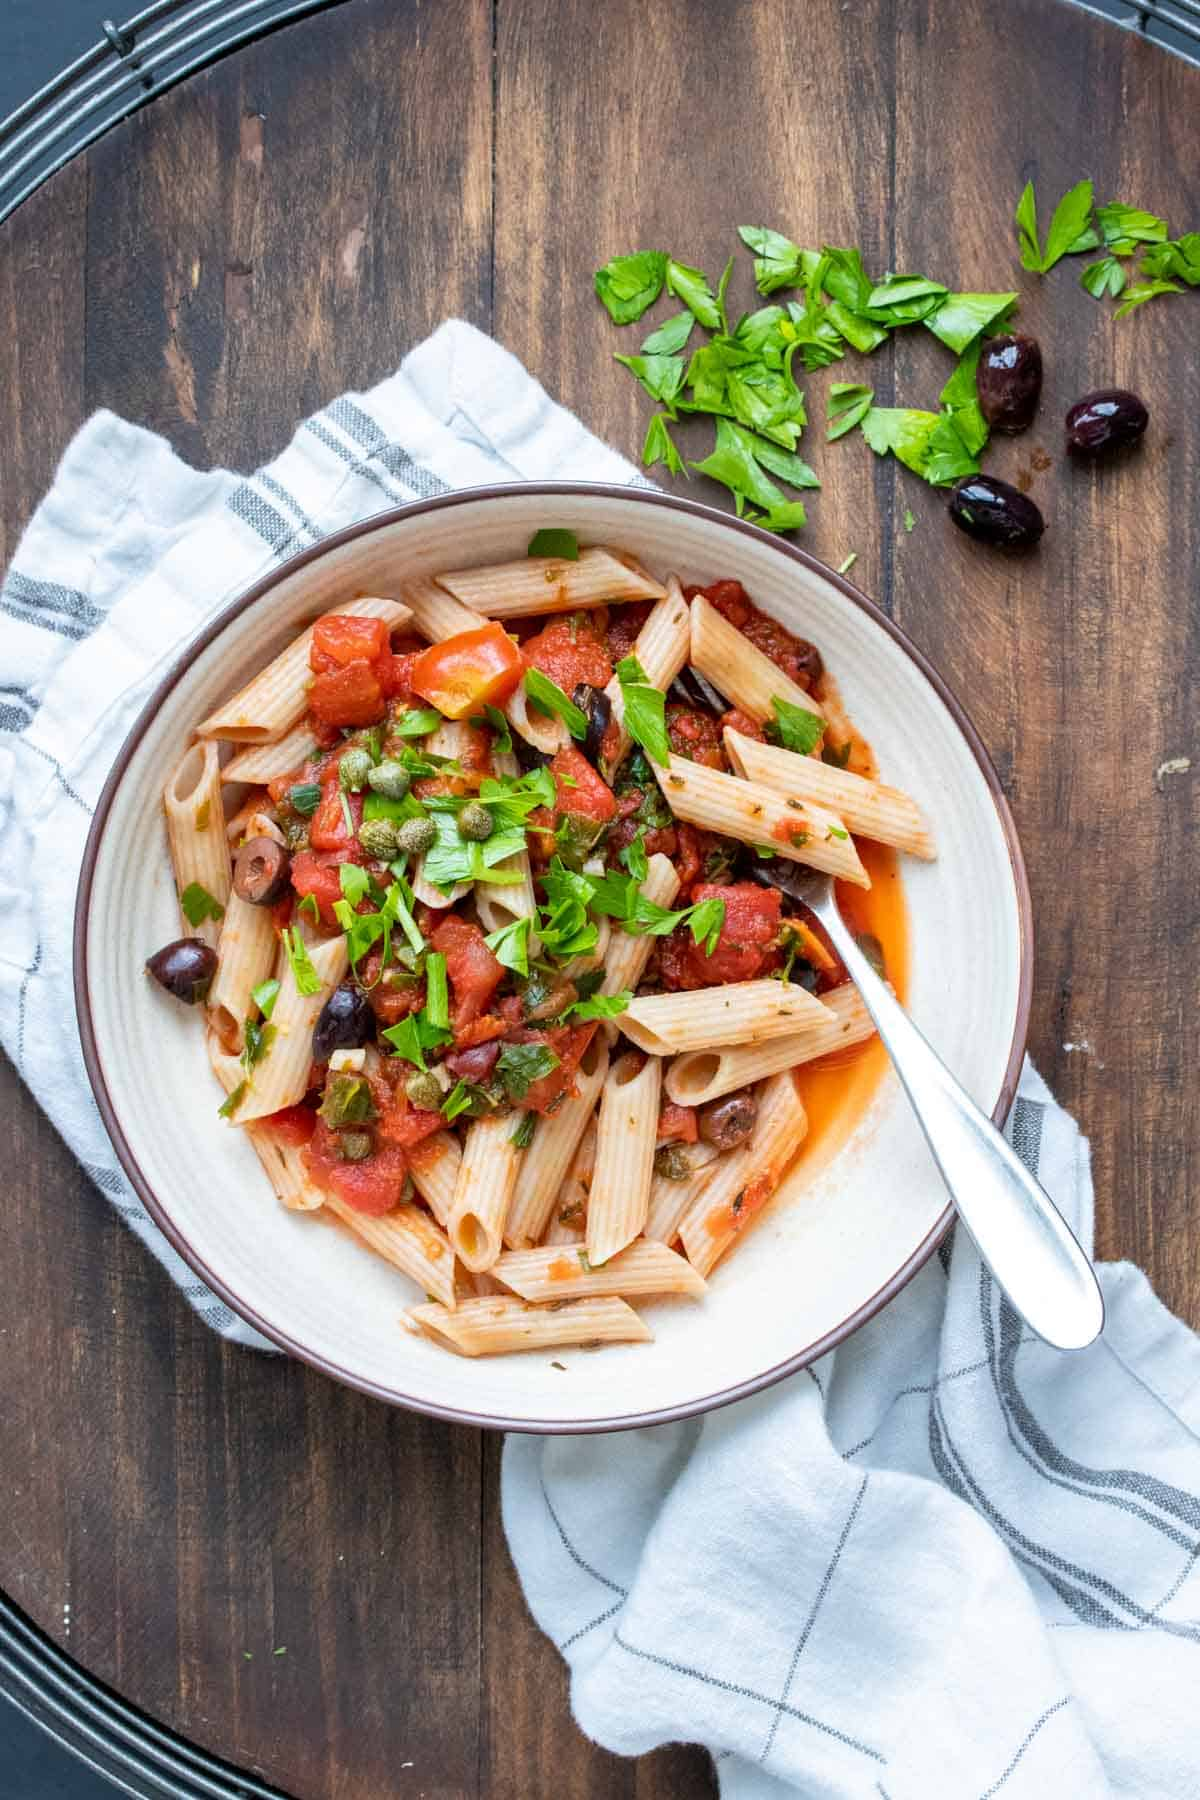 White bowl with penne pasta mixed with puttanesca sauce and parsley